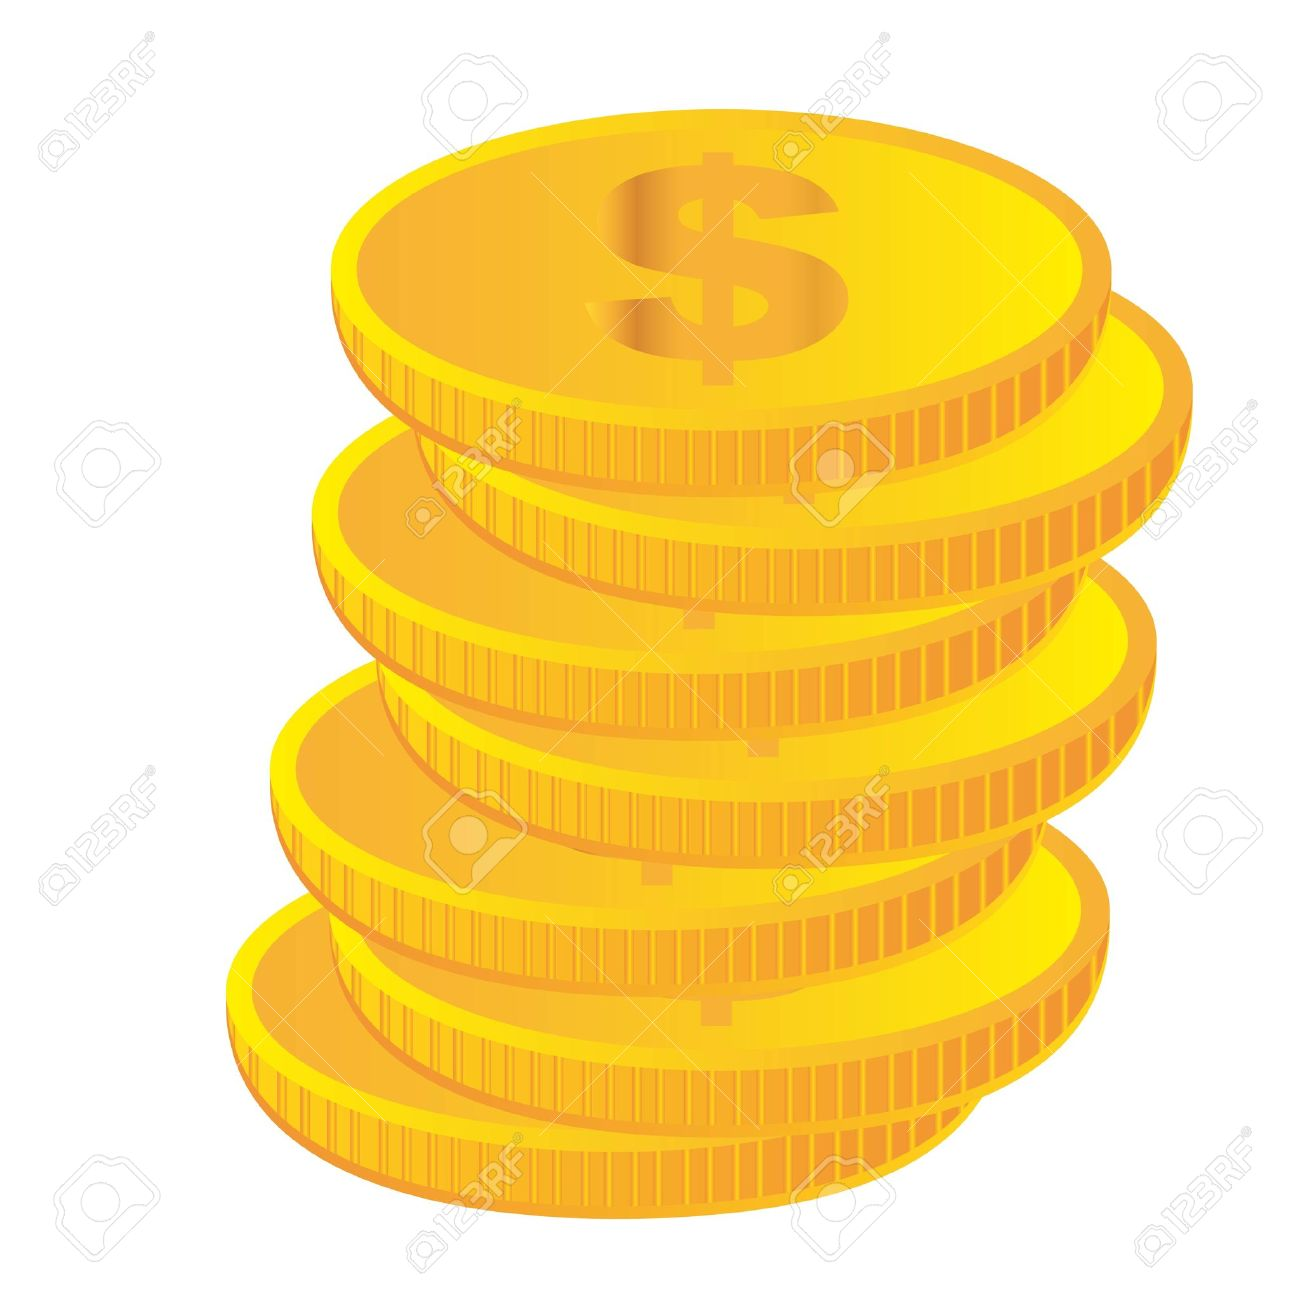 Gold token clipart.